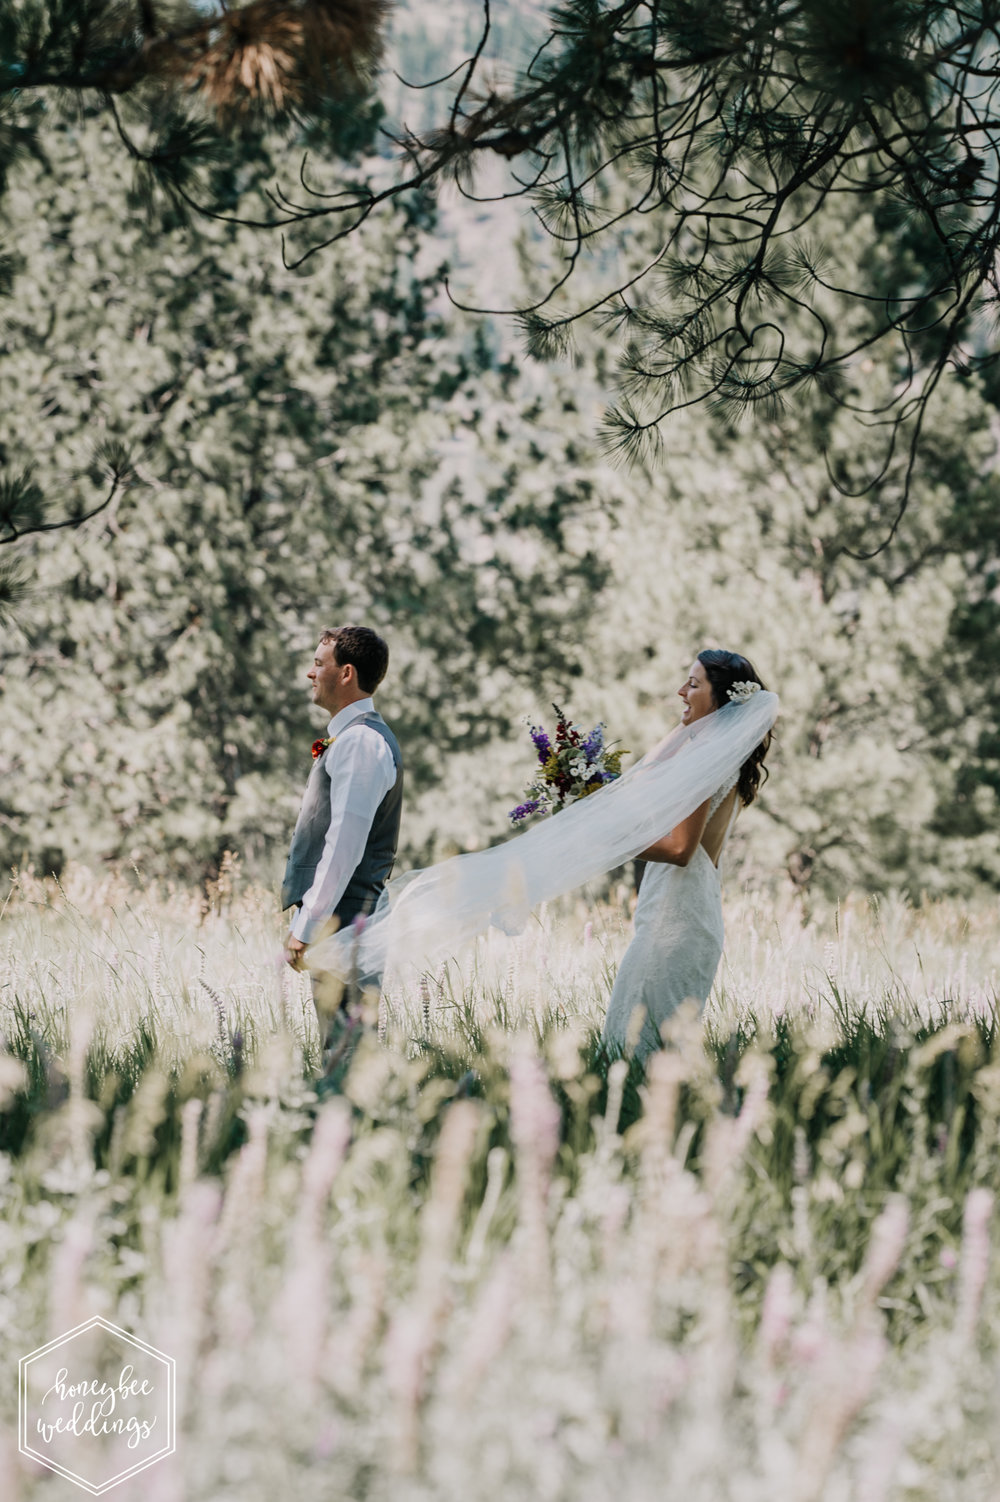 64 White Raven Wedding_Montana Wedding Photographer_Honeybee Weddings_ Meghan Maloney + Arza Hammond 2018-8313.jpg